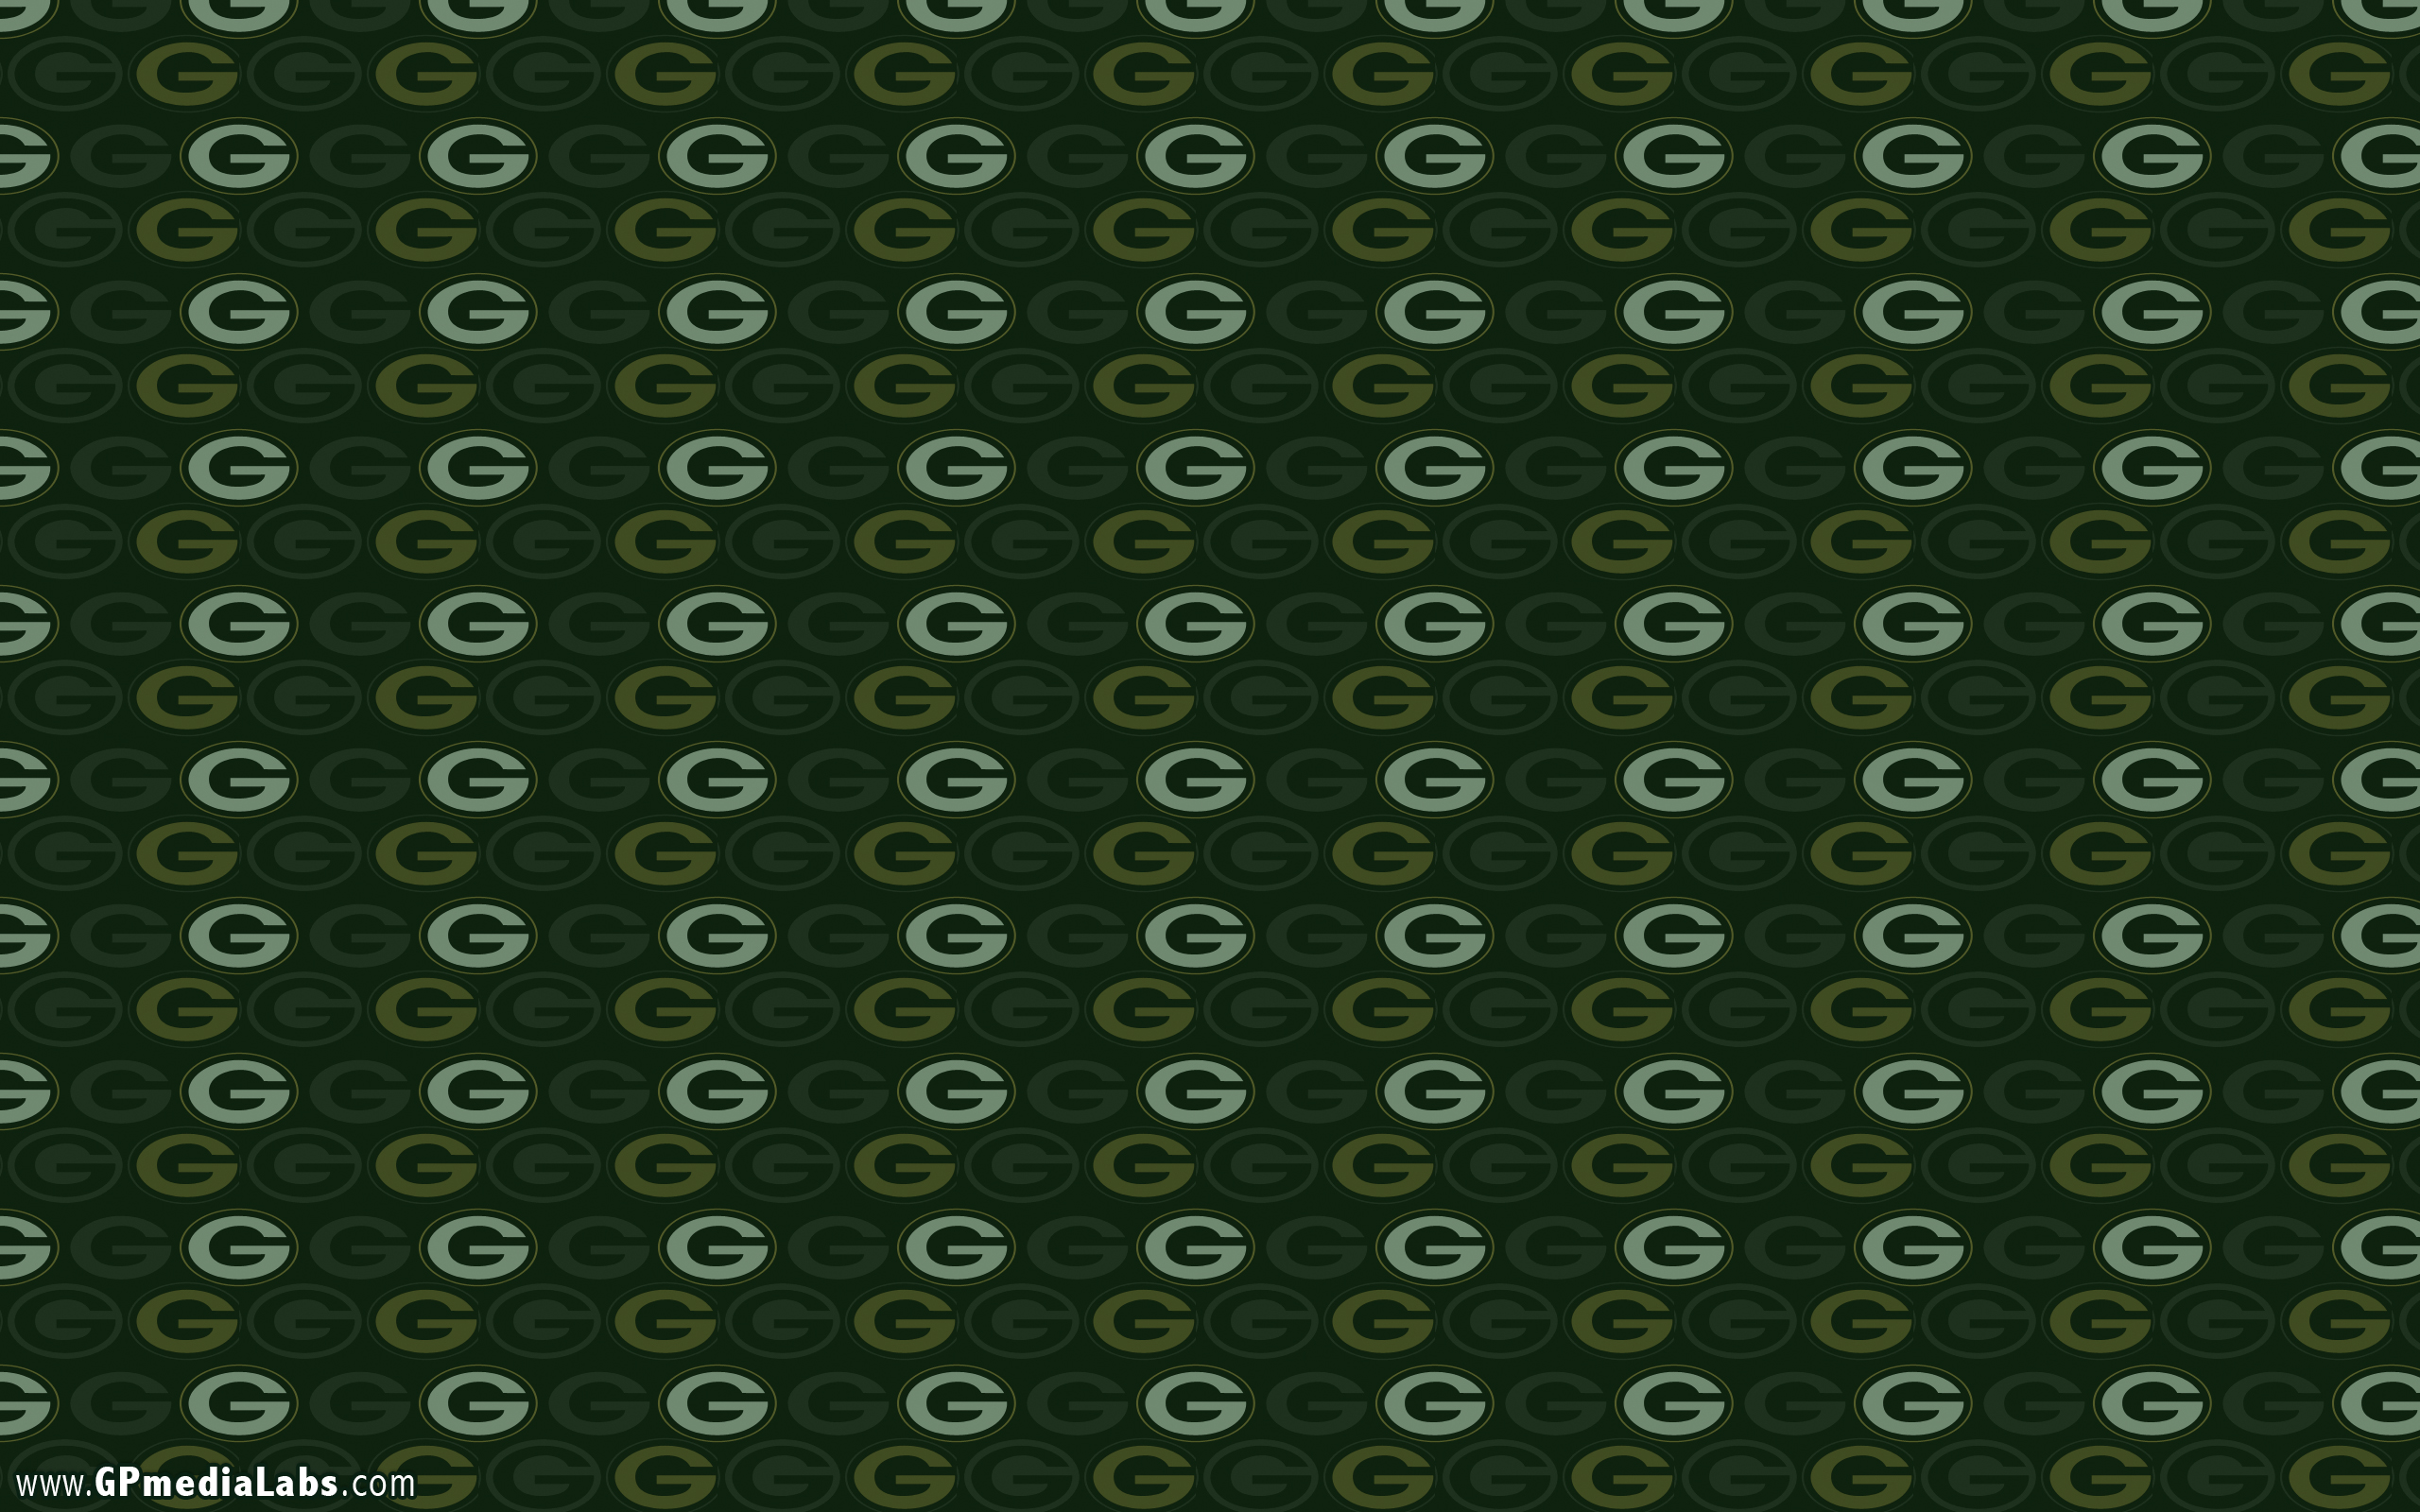 More Green Bay Packers wallpapers Green Bay Packers wallpapers 2560x1600